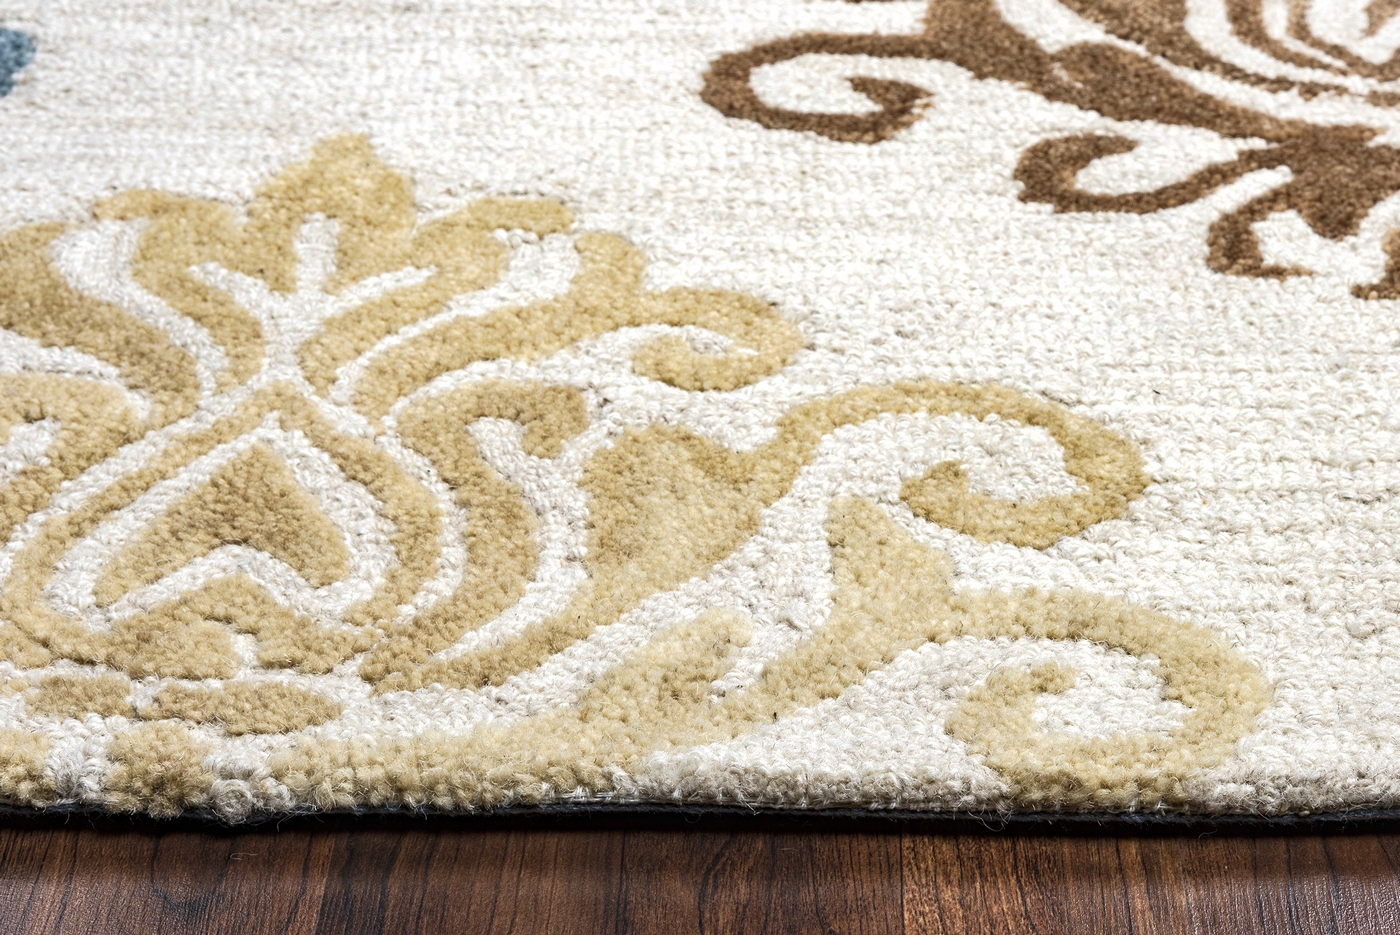 Grey Tan And Brown Area Rug: Lancaster Diamond Damask Wool Area Rug In Gold Brown Blue